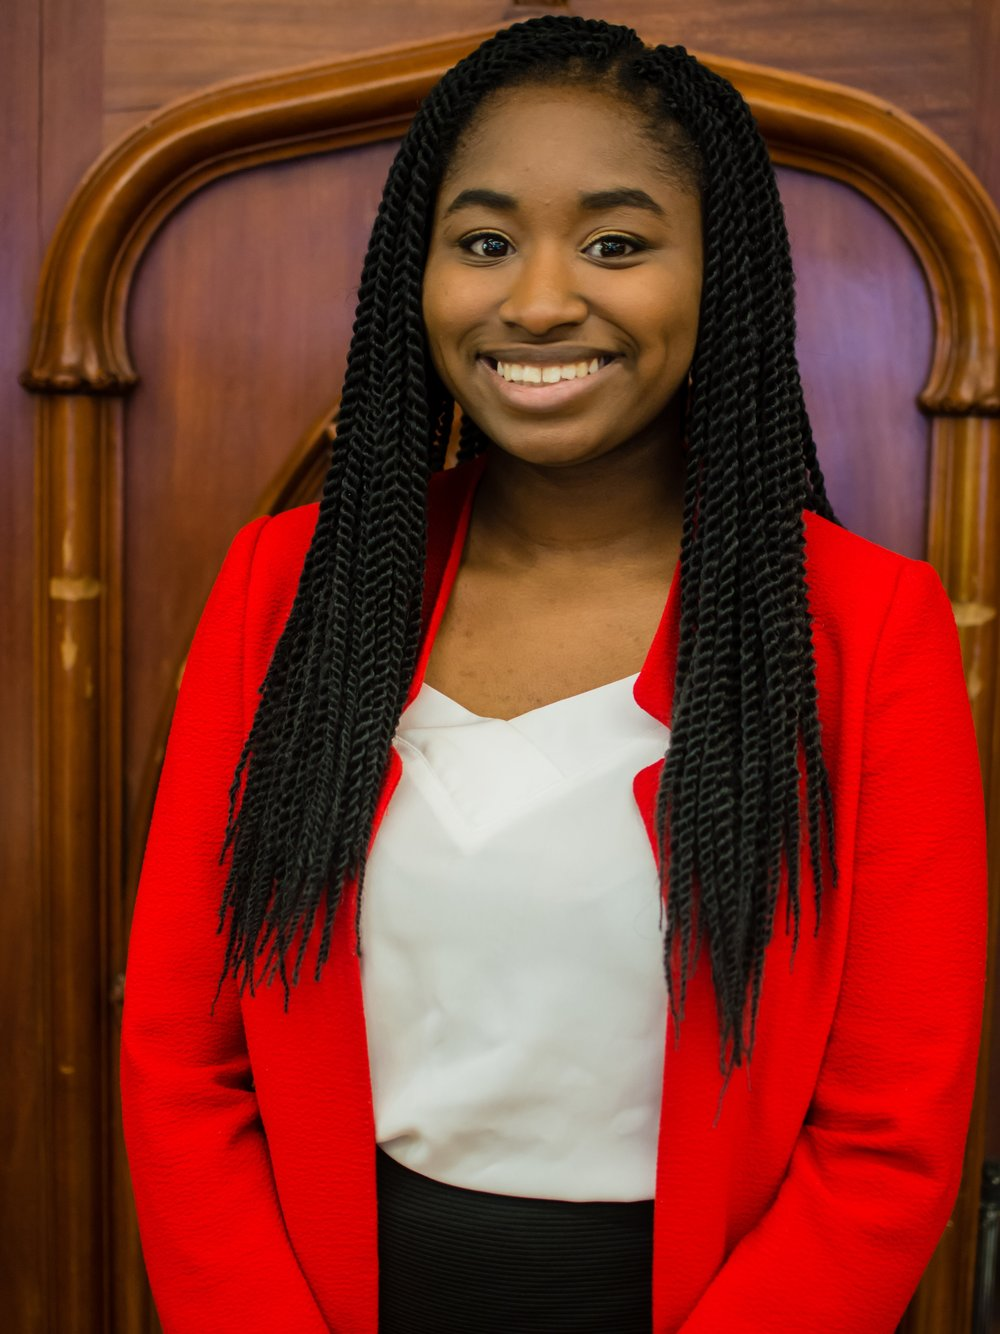 Hawa Maiga - Director of Public Relations - Meet Hawa, your Director of Public Relations for McMUN 2019! Born and raised a Montreal local, Hawa went to Marianopolis College in Honors Health Science, during which she found her passion in International Relations and Diplomacy after attending McMUN twice as a delegate. In her first year at McGill, Hawa served as the Food & Local Sponsorship Coord for McMUN 2018 and represented McGill at BarMUN and NaMUN, taking home a Best Delegate award. Today, she's in her second year of pursuing a degree in International Development Studies and Political Science at McGill University, where she serves as the President of Amnesty International to best fulfill her passion for Human Rights and Development. When not in McGill, you can find Hawa working at the municipal library in Ville de Sainte-Catherine, eating Ben & Jerry's with her friends (ask her about the Bernie Sander's flavor), or tuning out to the various educational programs on TLC (The Learning Channel).